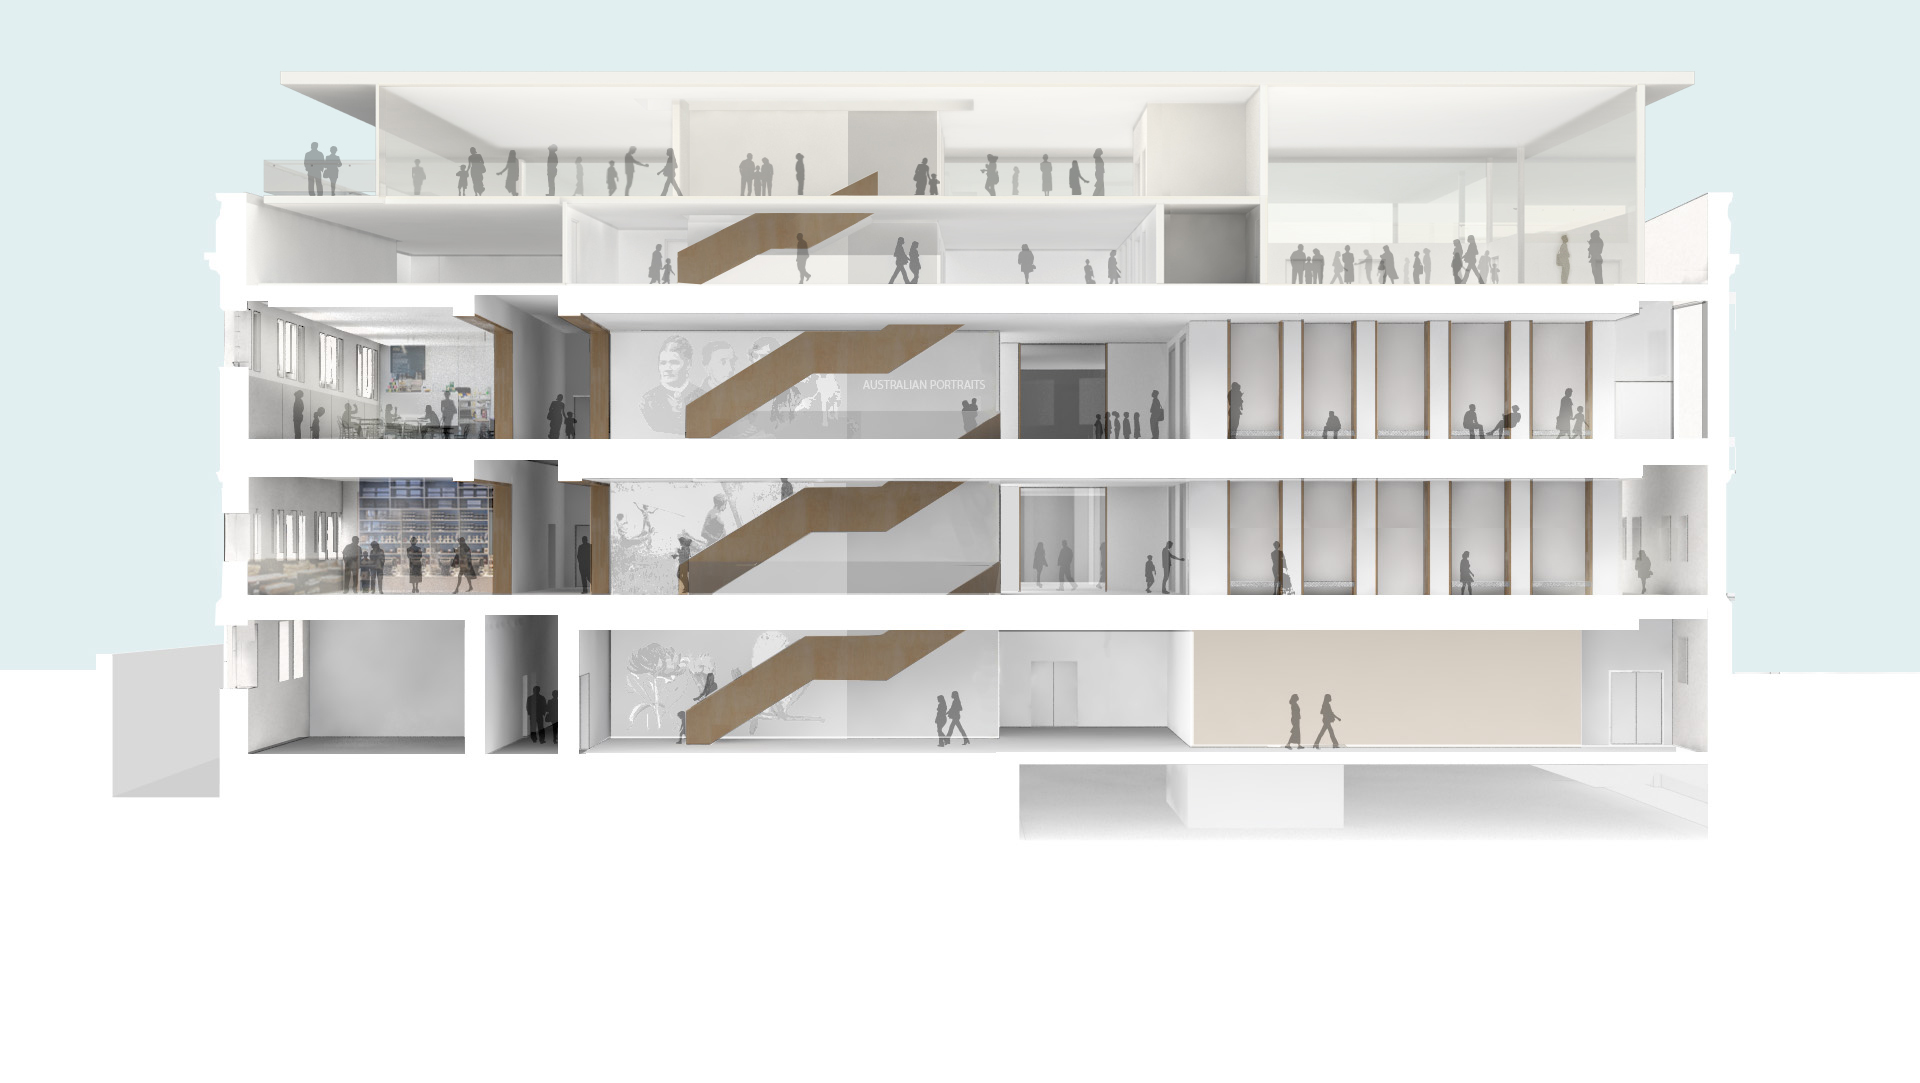 Artist's impression of circulation galleries (multi-level view) Source: Hassell